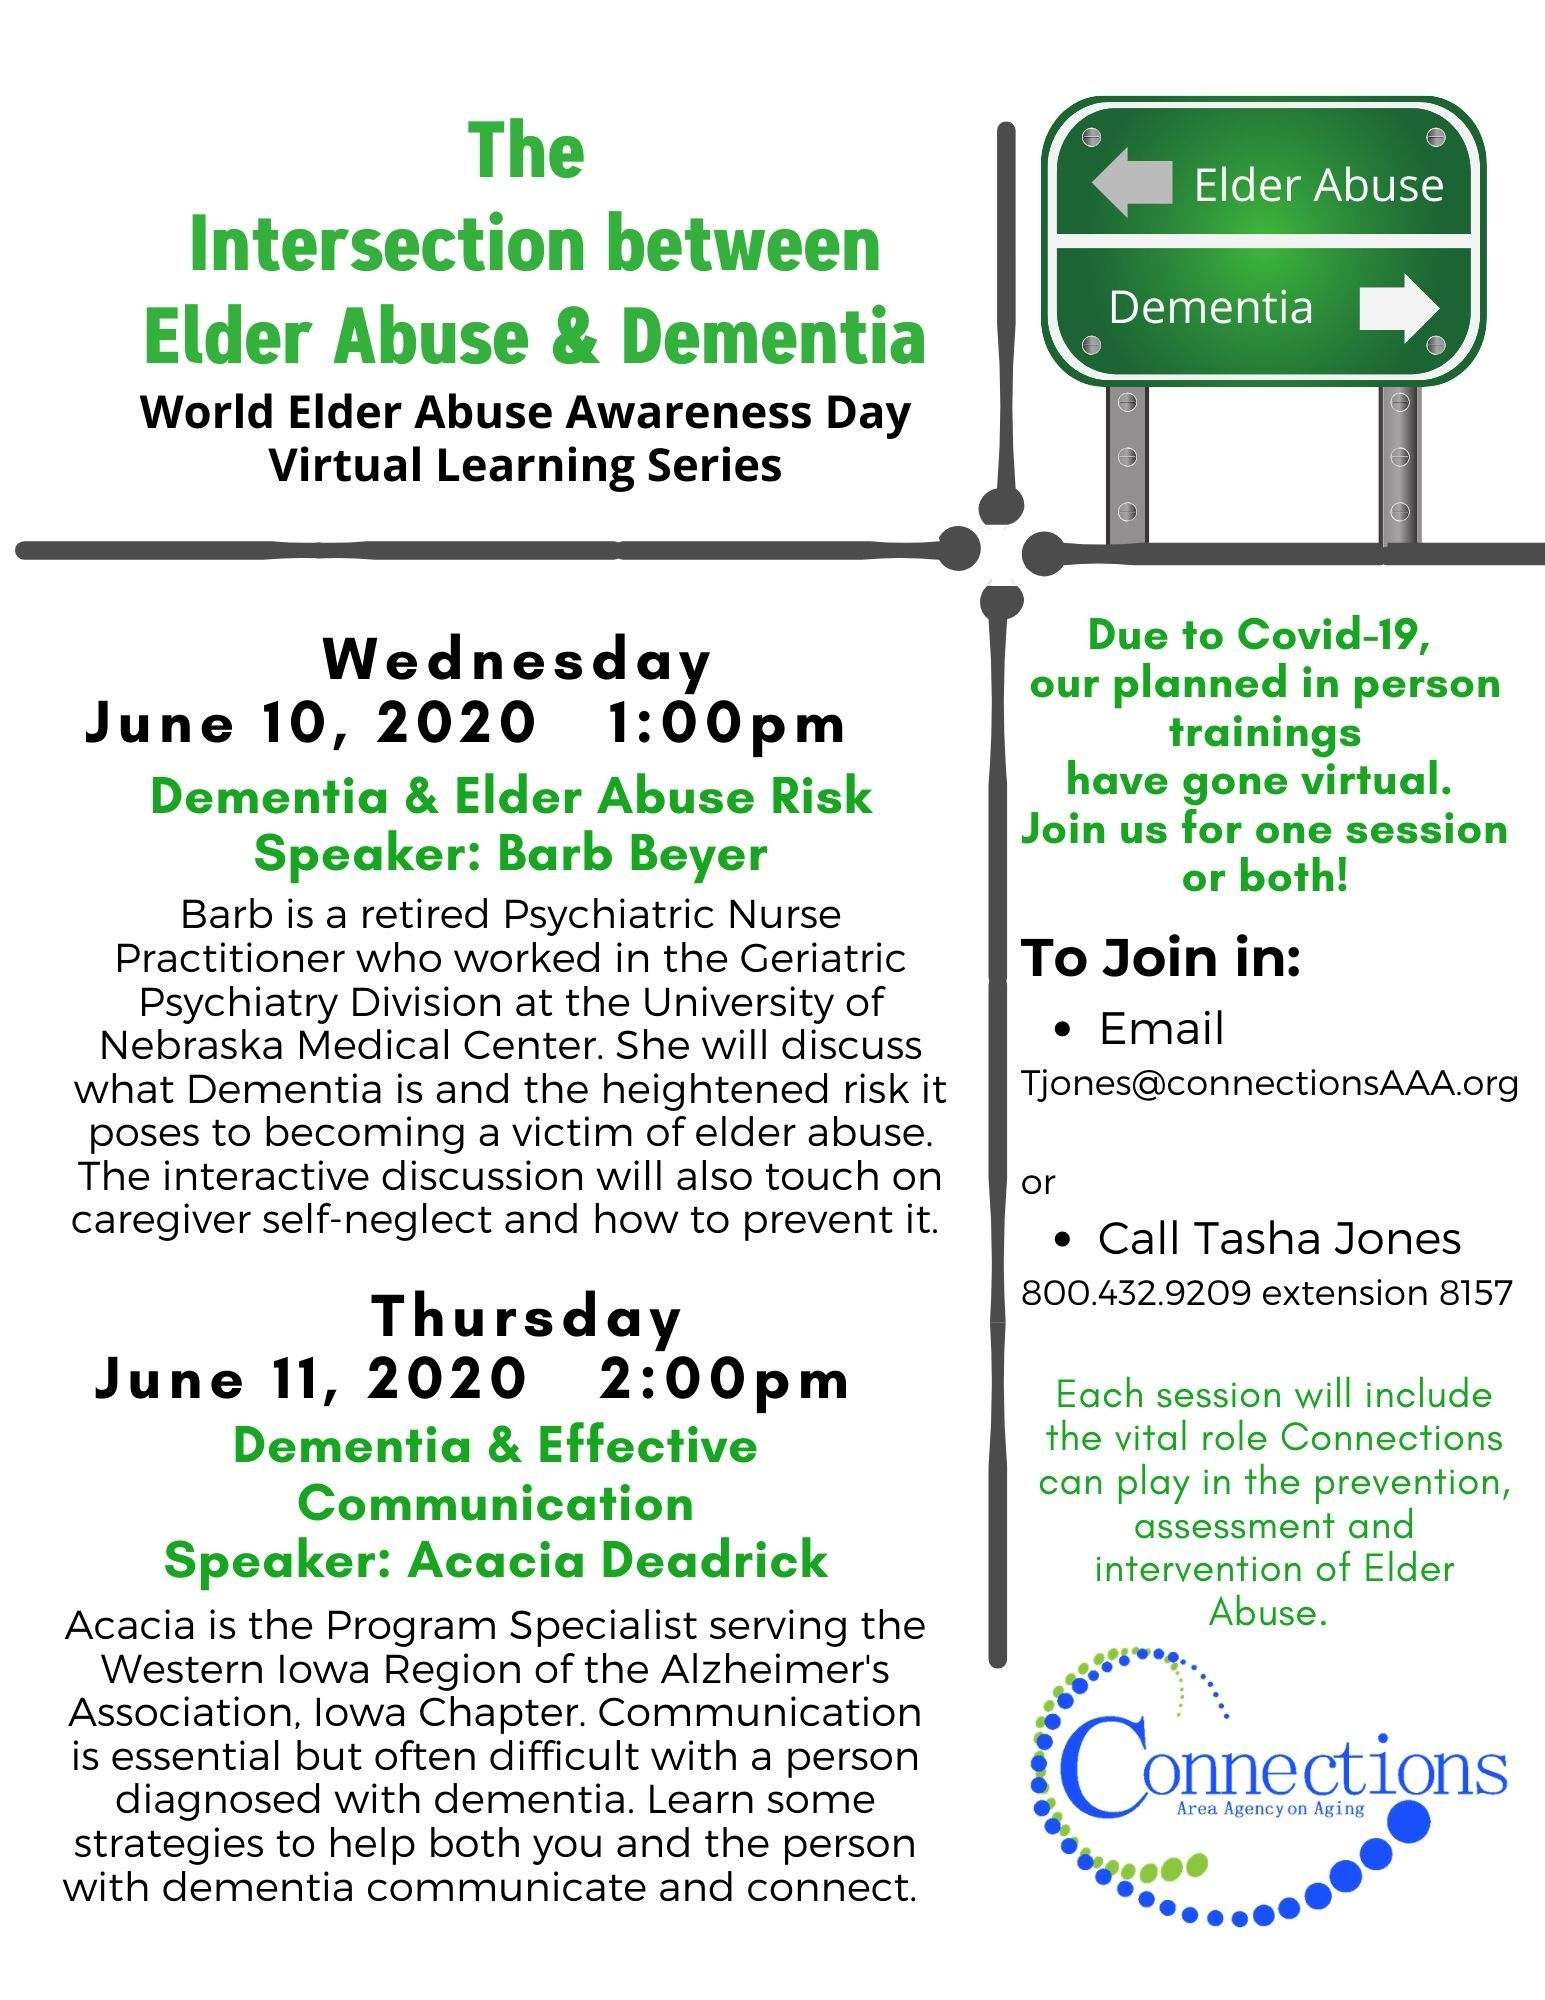 Elder Abuse Workshops Move to an On-line Format